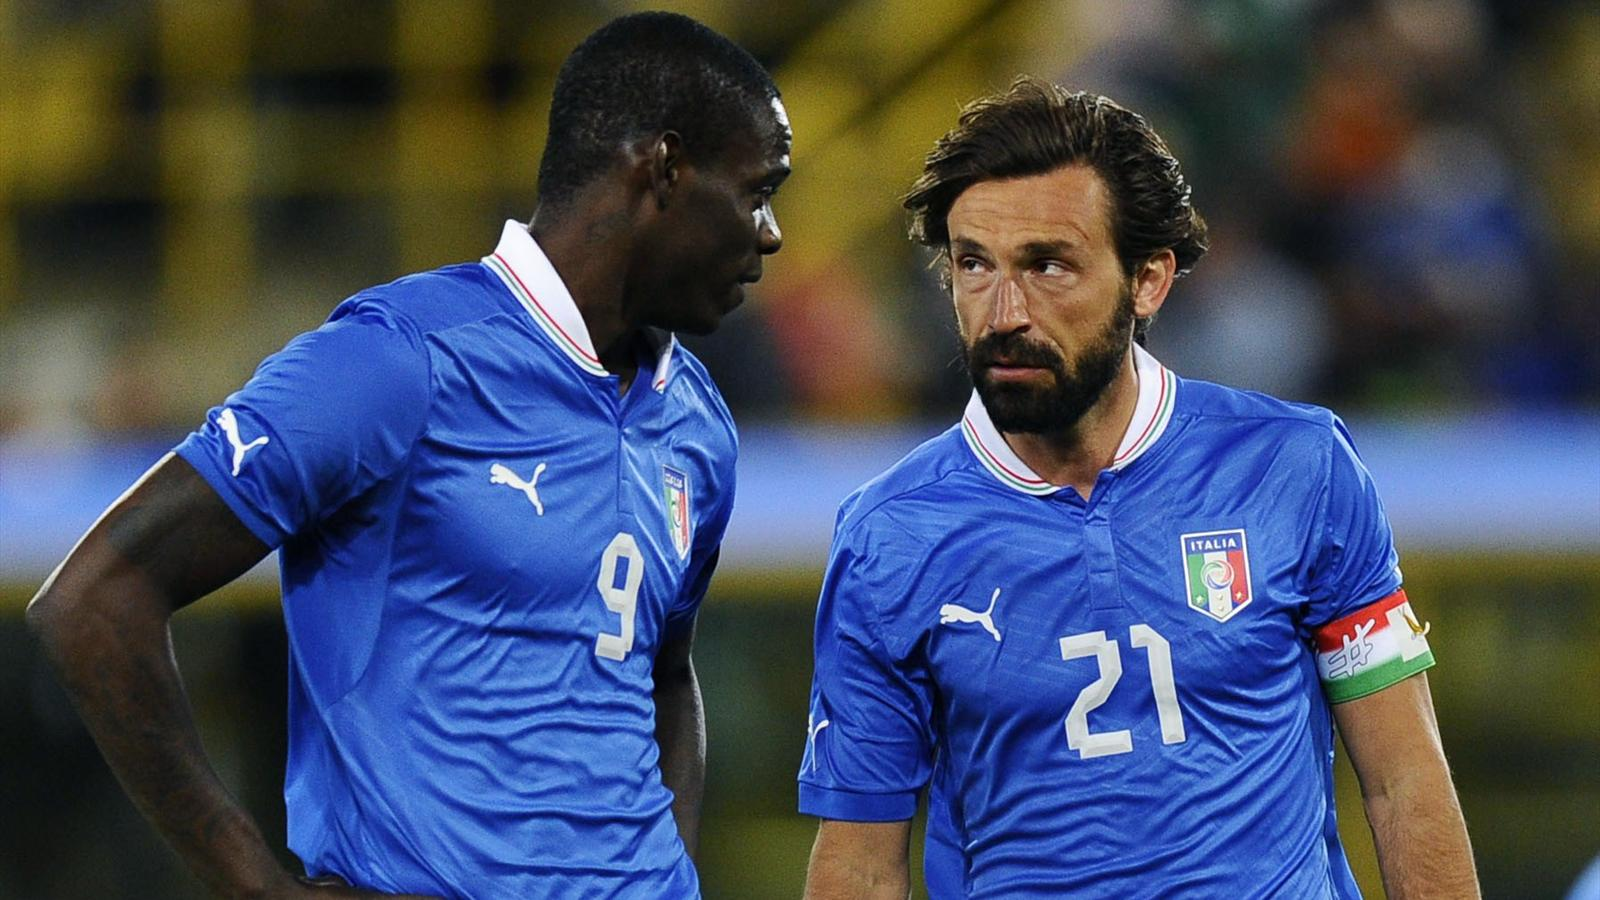 FOOTBALL 2013 Italie - Balotelli et Pirlo